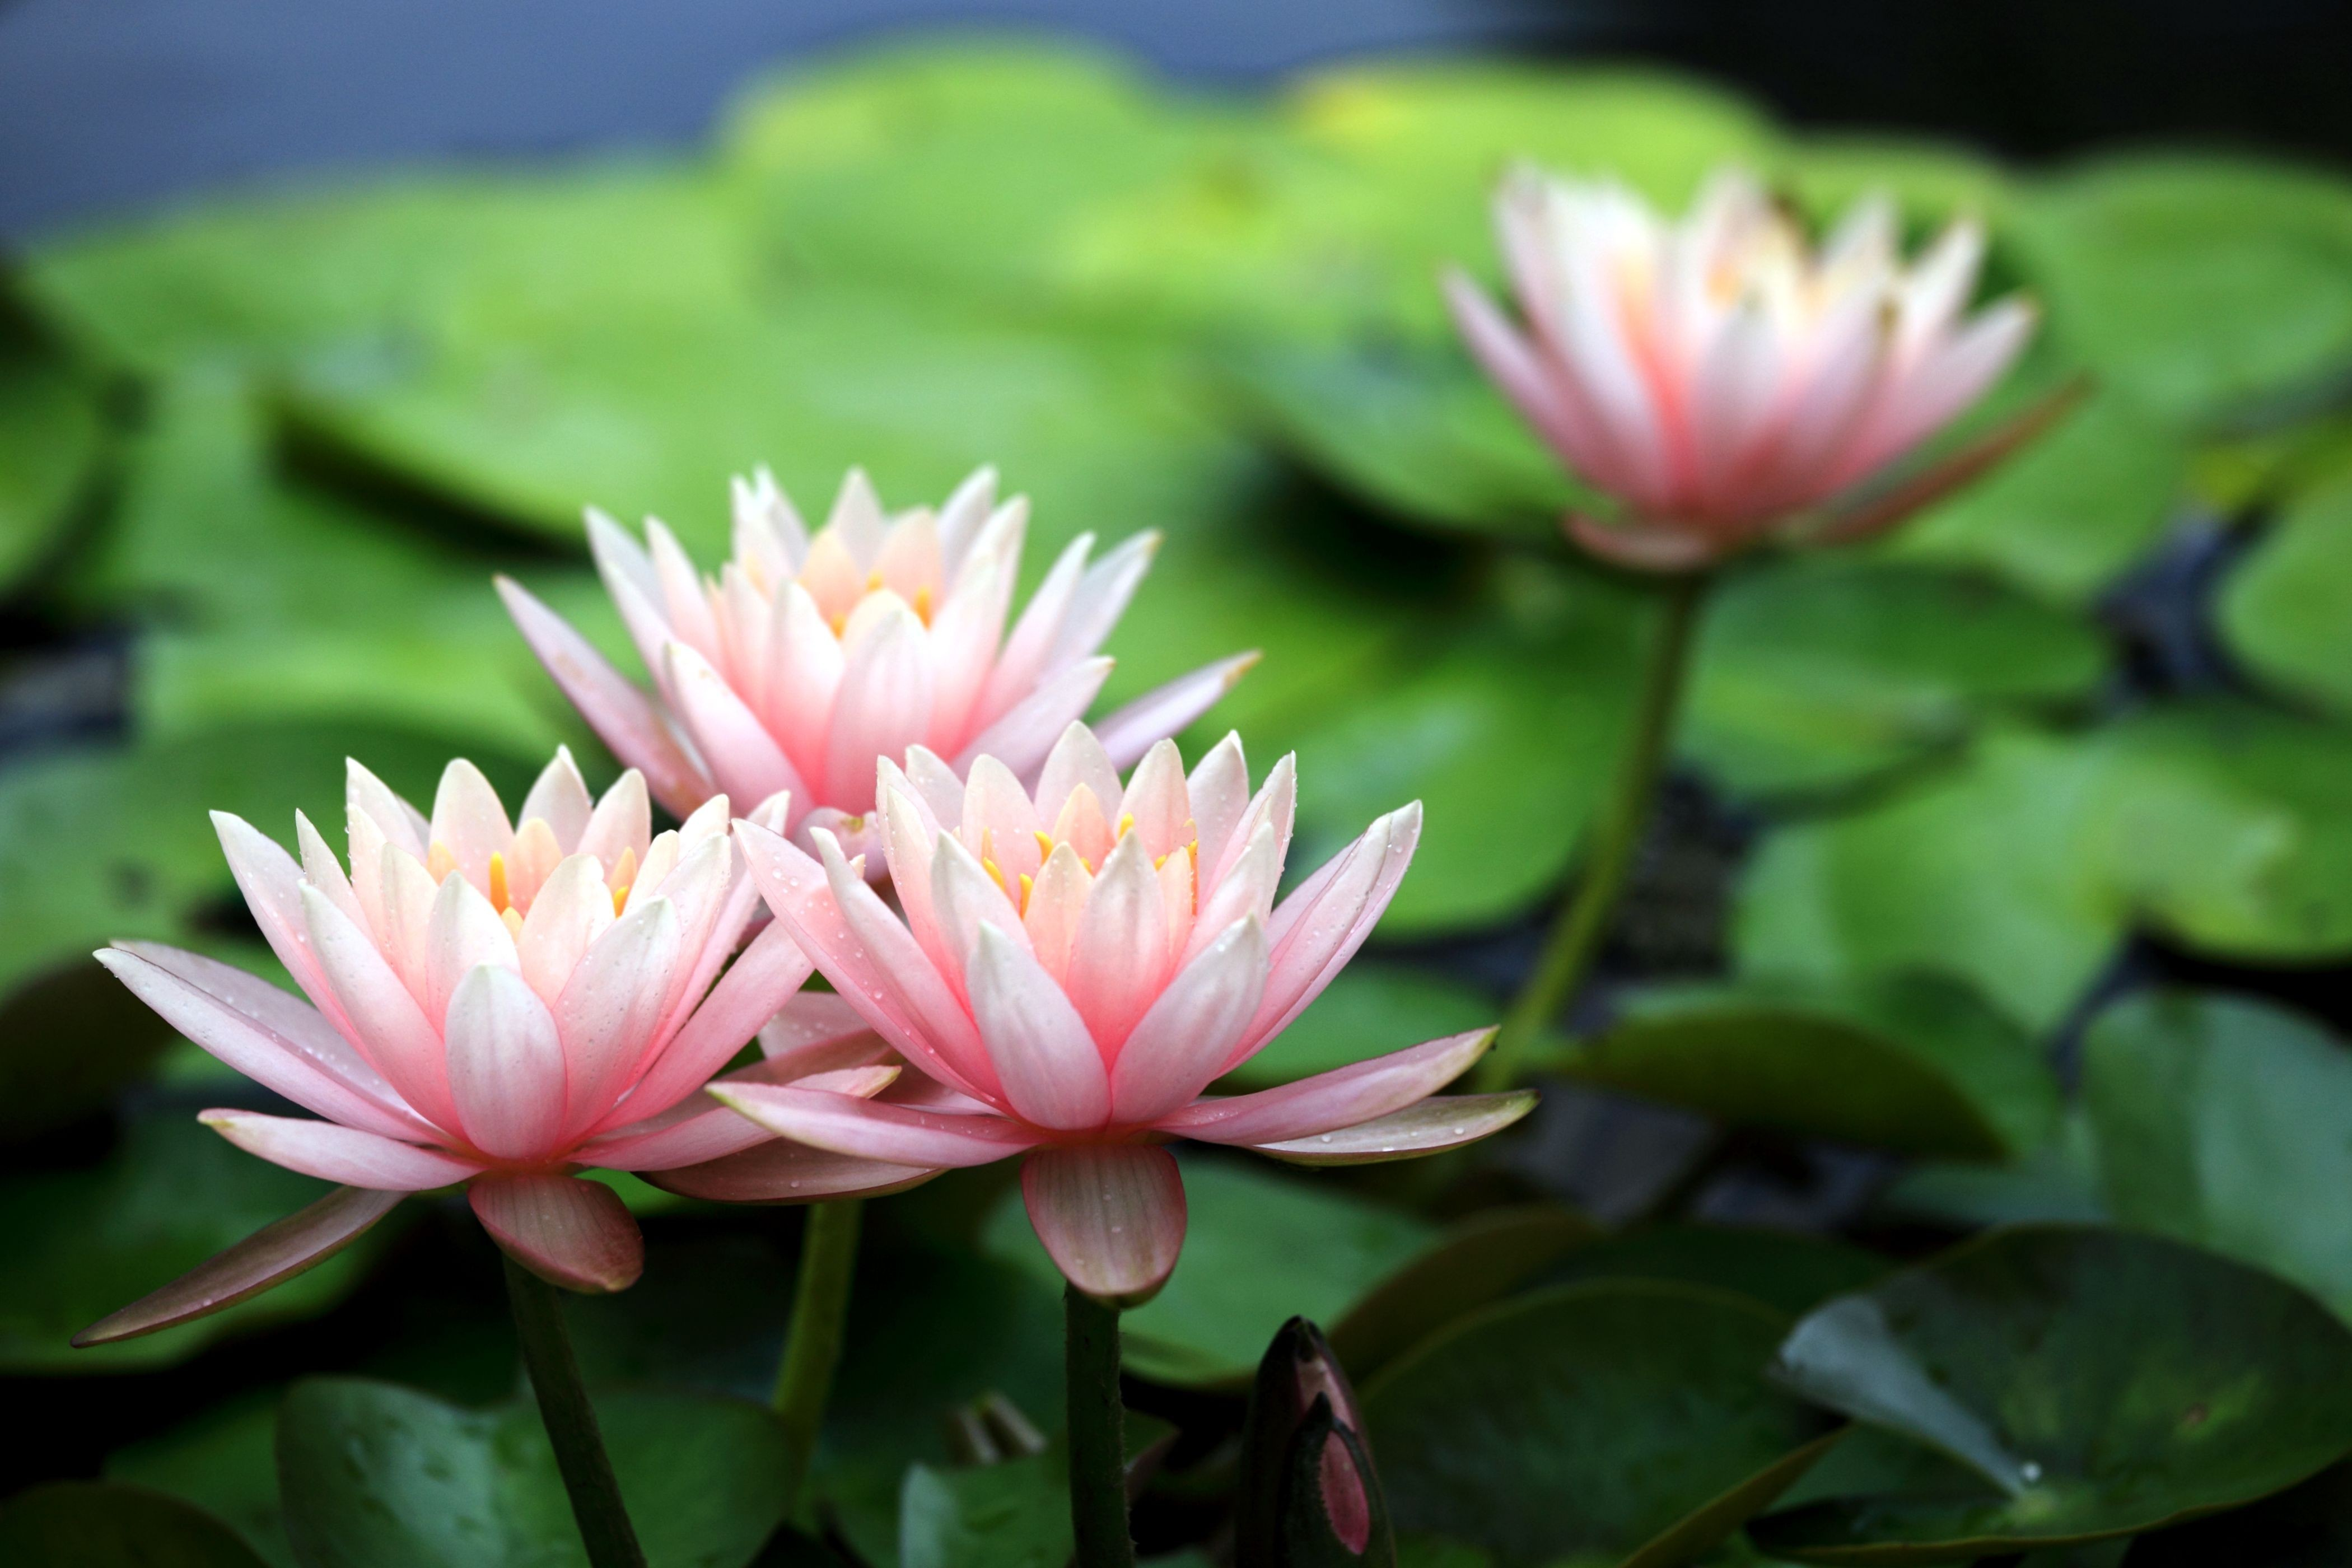 Pink water lily lilies flowers petals wallpaper 4200x2800